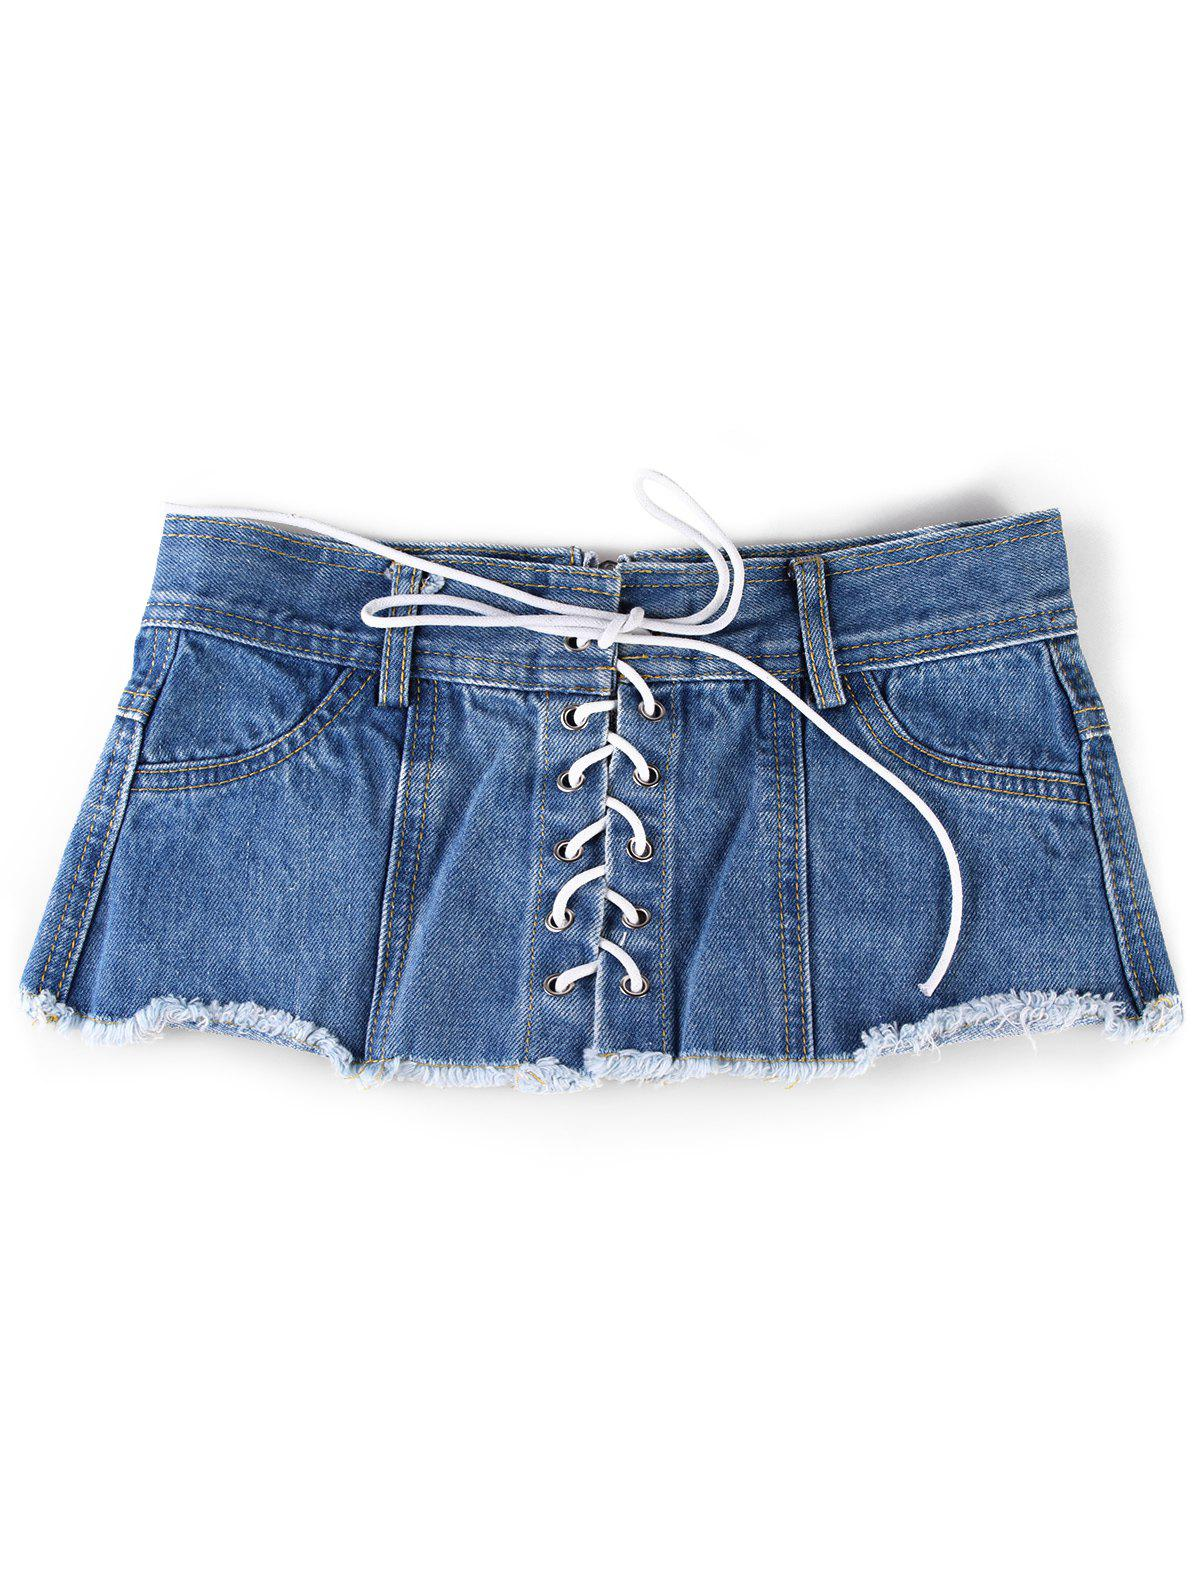 Trendy Stylish Denim Shorts Wide Waist Belt